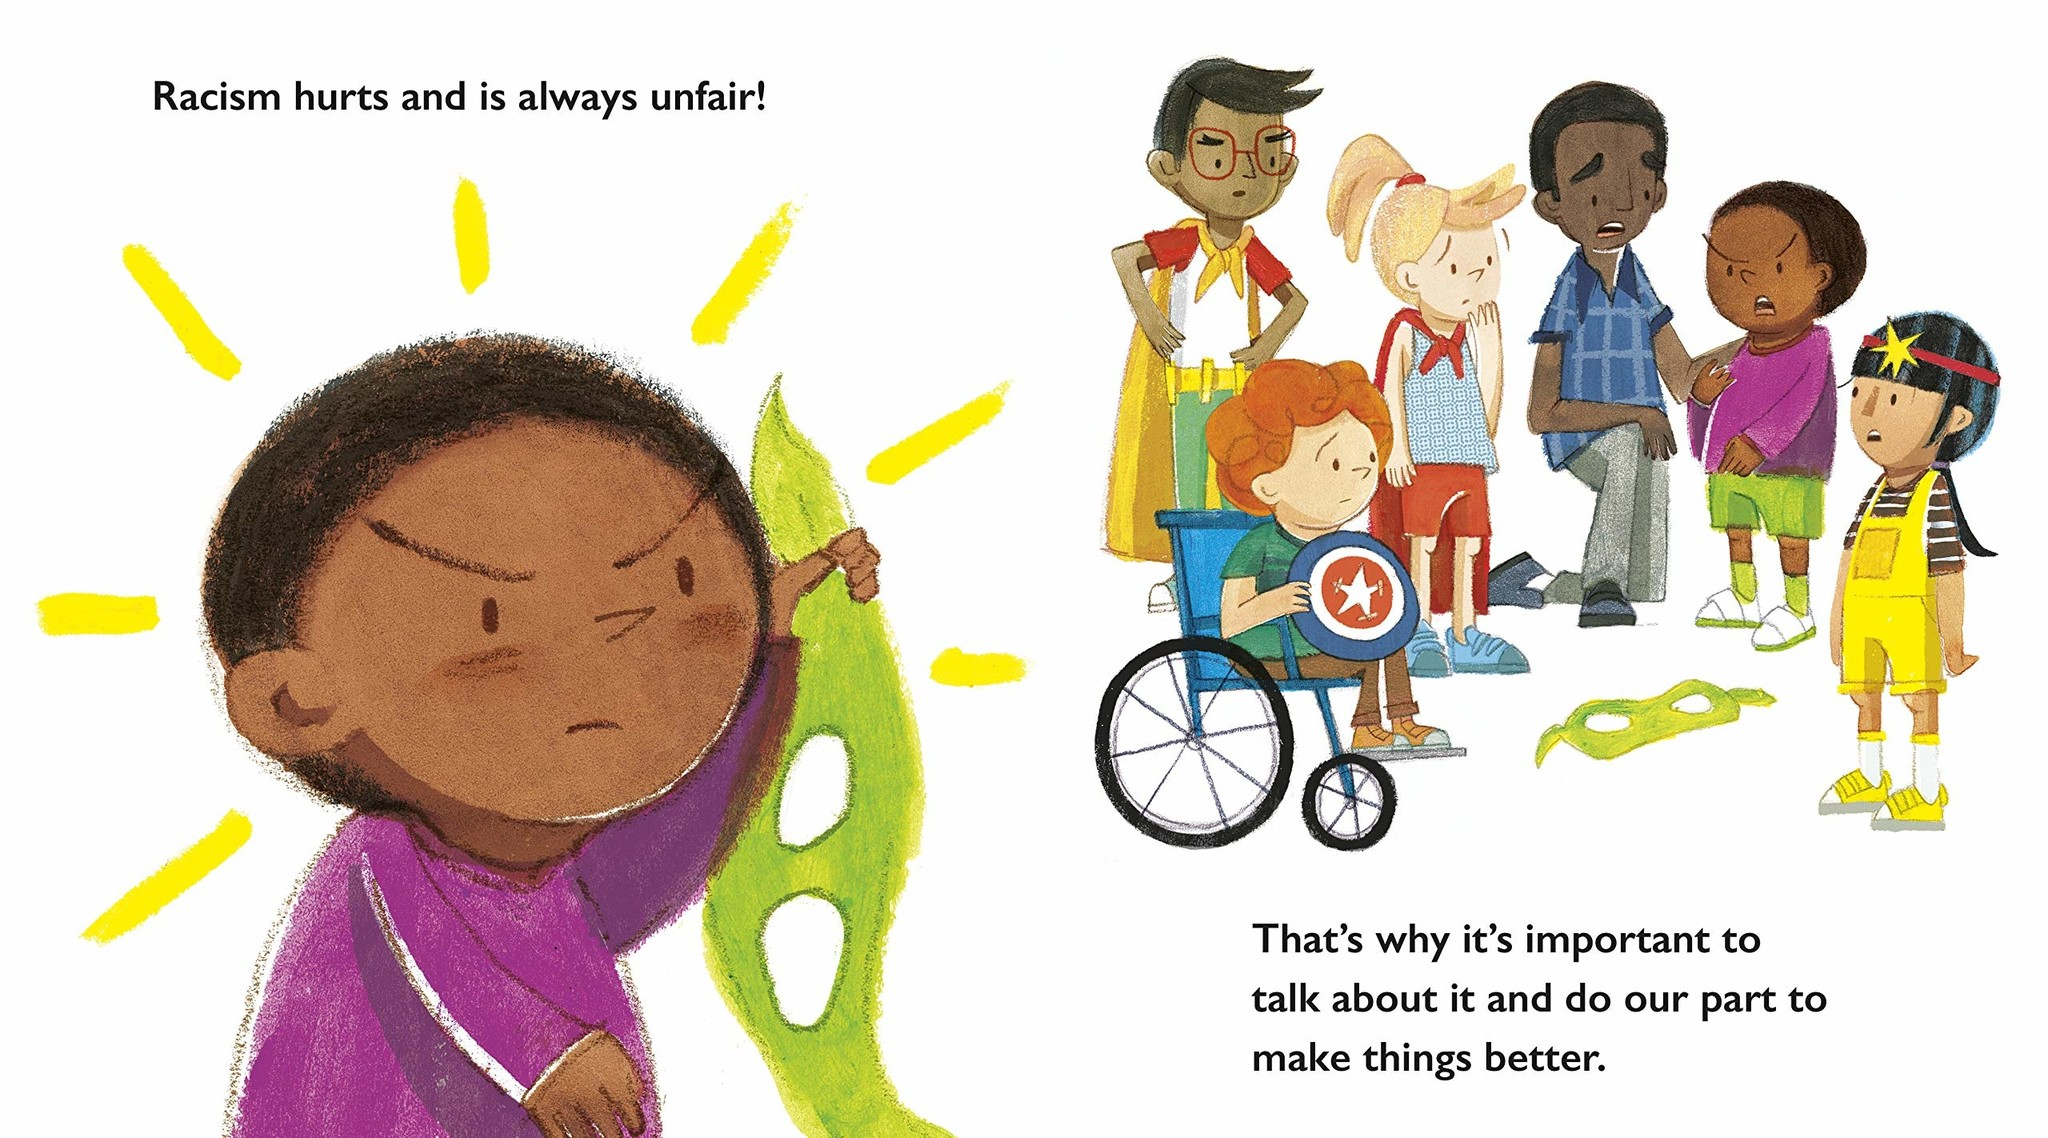 Our Skin: A First Conversation About Race (ages 2-5)